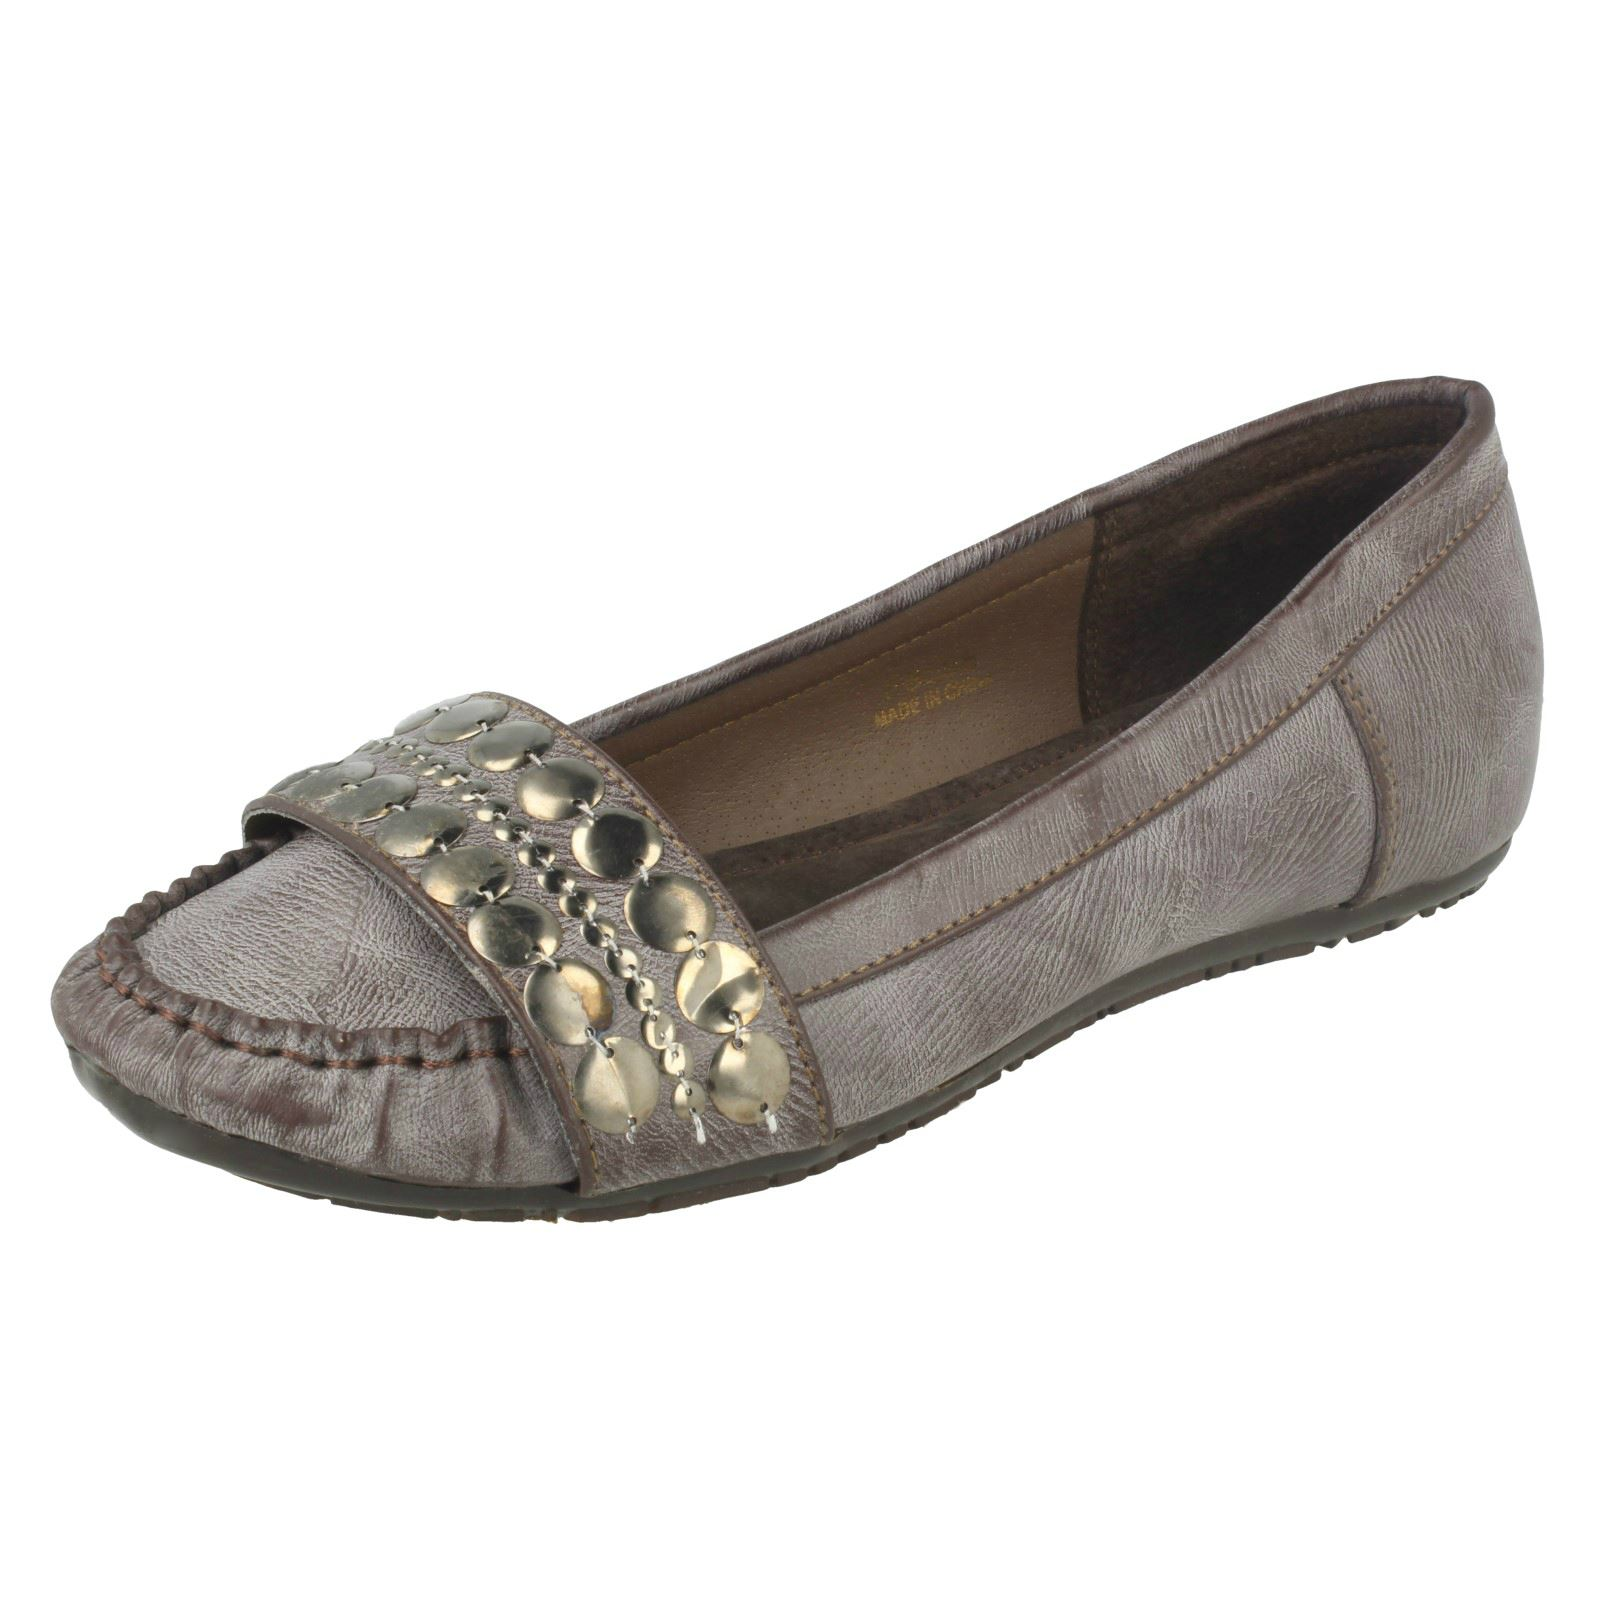 04a15776d45b Ladies Spot on Moccasin Style Flat Shoes Brown UK 5 Standard. About this  product. Picture 1 of 10  Picture 2 of 10 ...